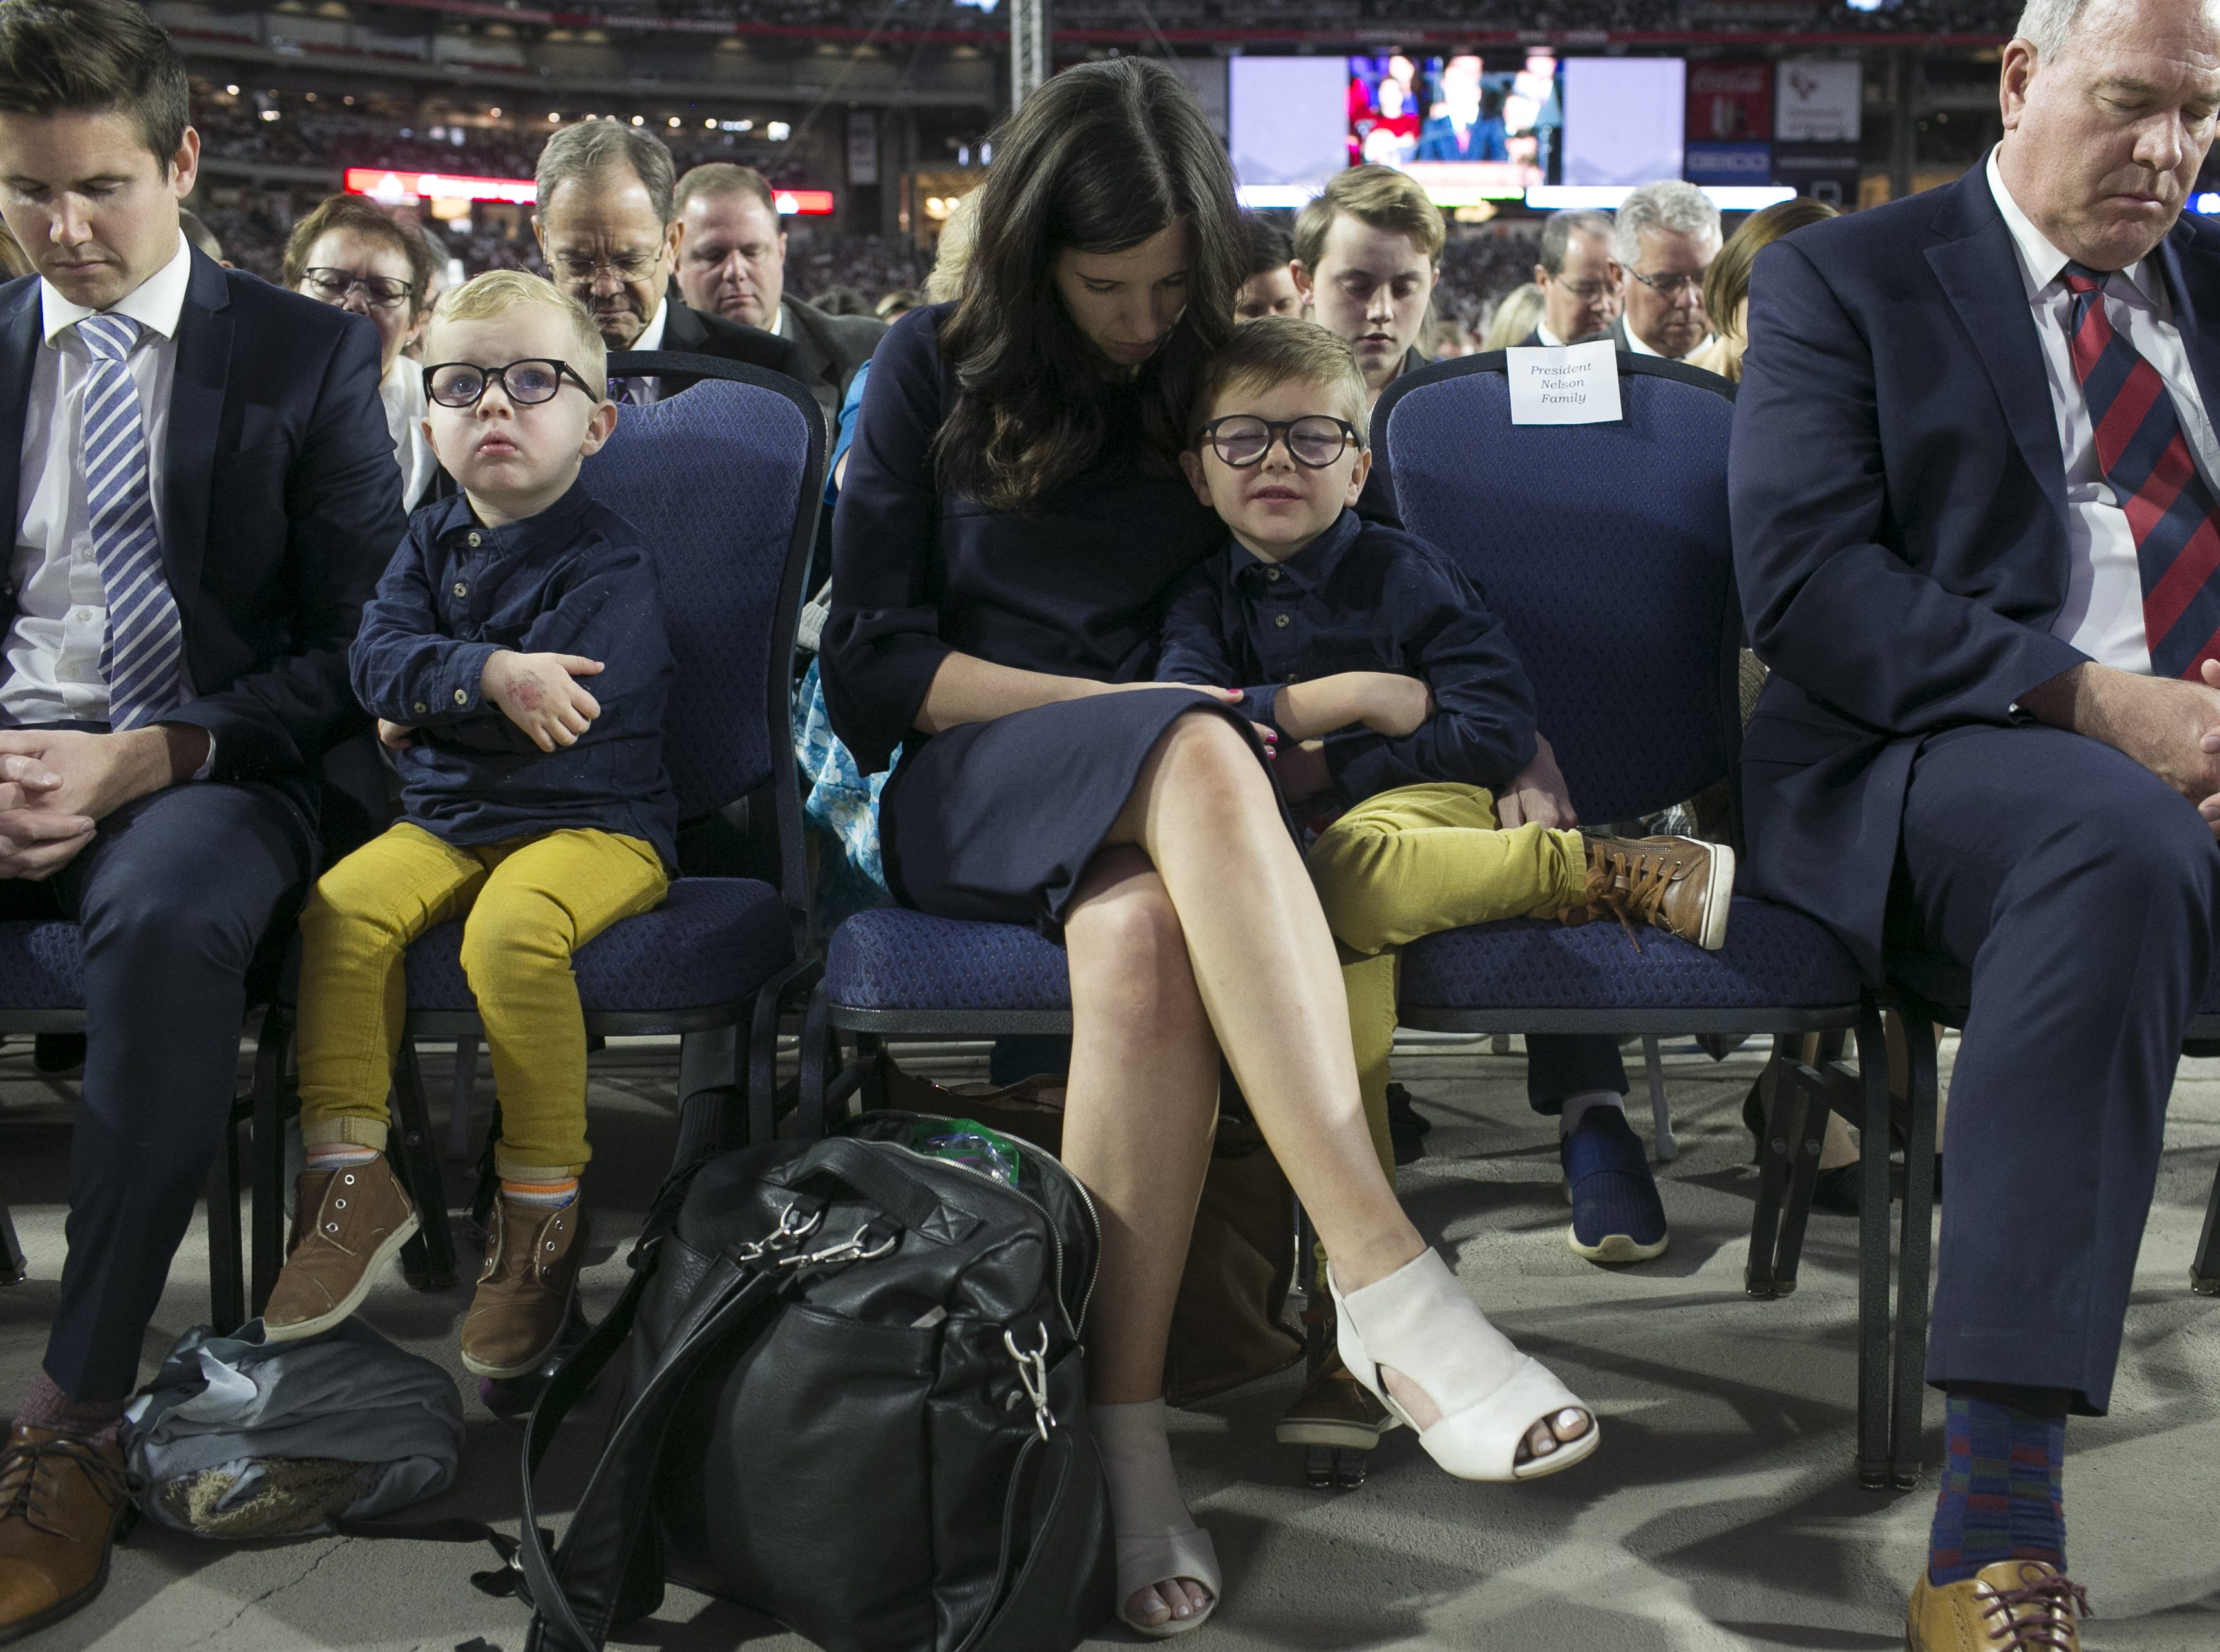 Family of Russell Nelson, president of the Church of Jesus Christ of Latter-day Saints, sit and pray in the front row as Nelson speaks to members of the church at State Farm Stadium on Sunday, Feb. 10, 2019.